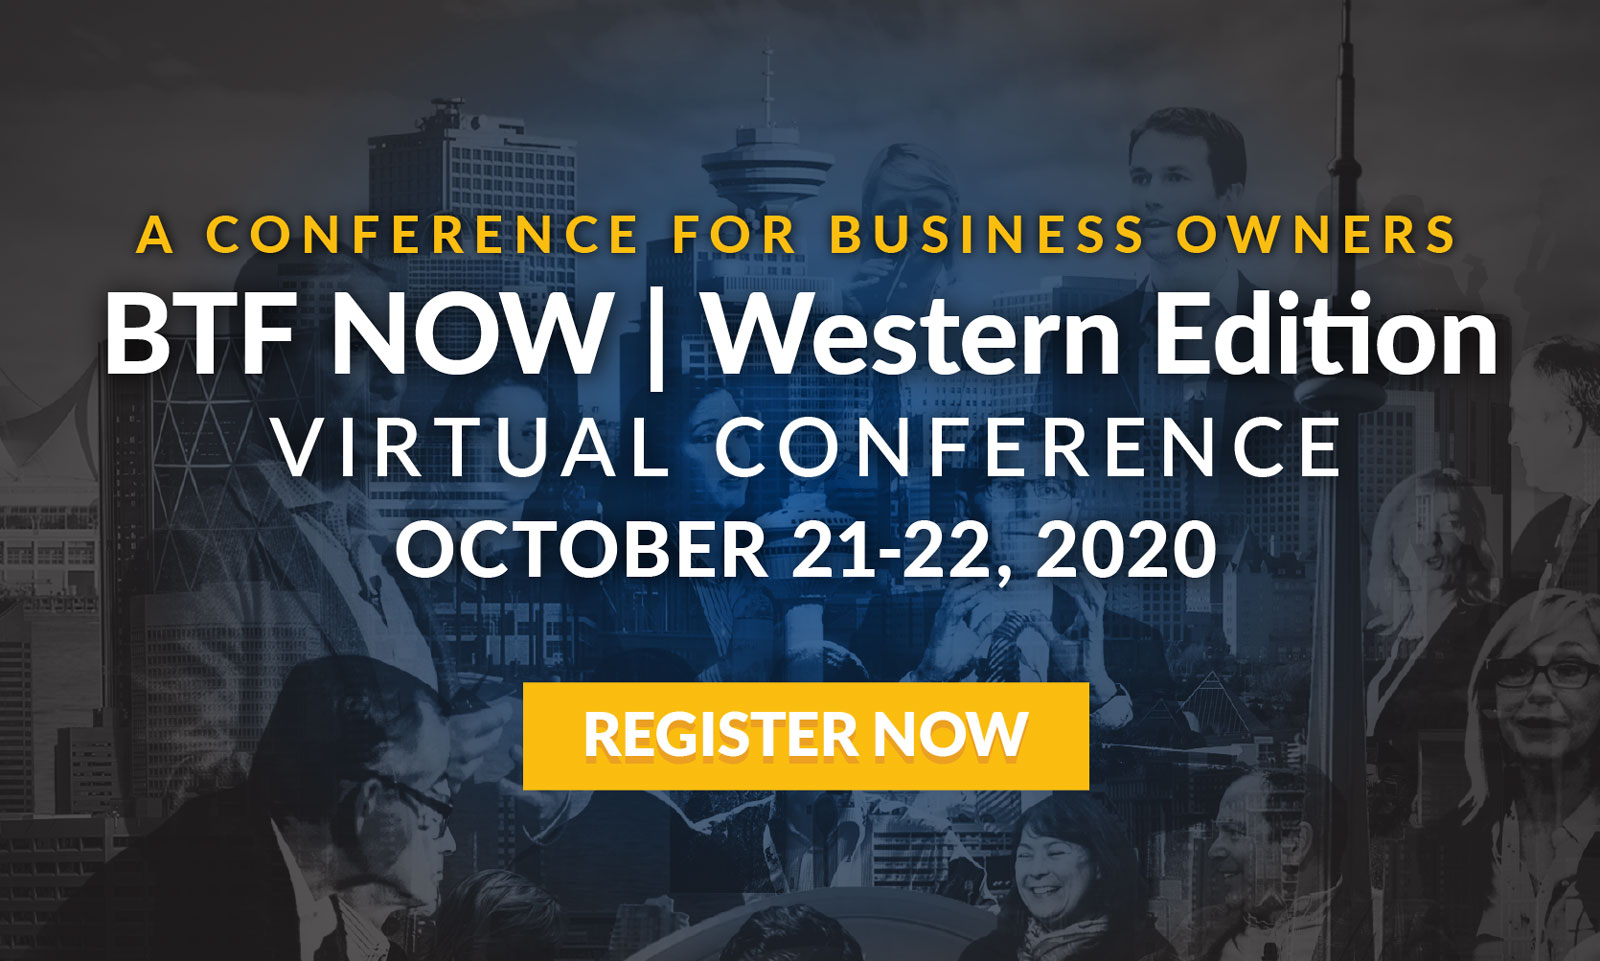 BTF NOW | Western Edition / Virtual Conference - Oct 21-22